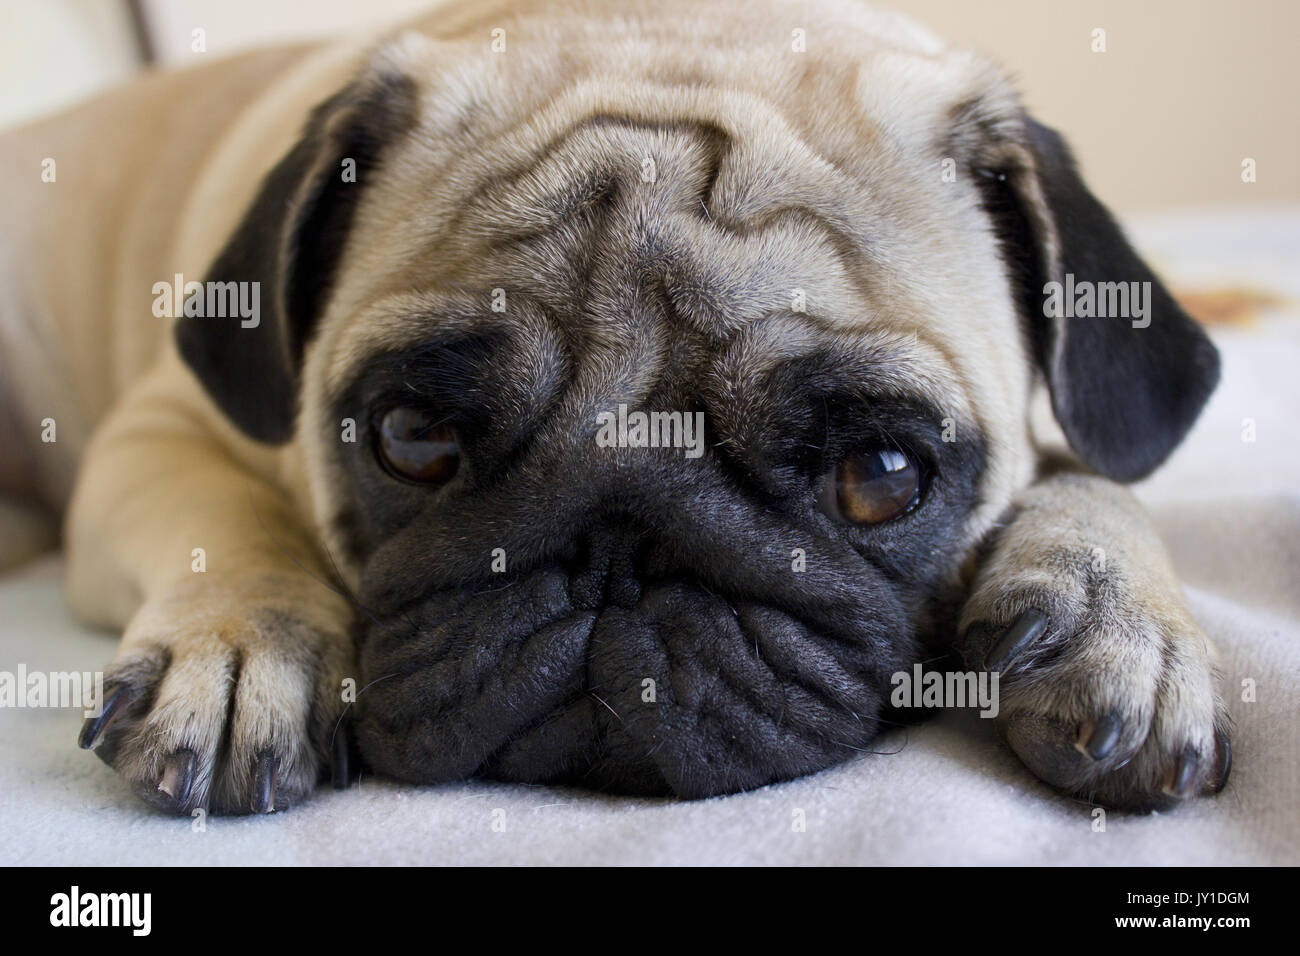 Sad puppy pug looking with big eyes - Stock Image